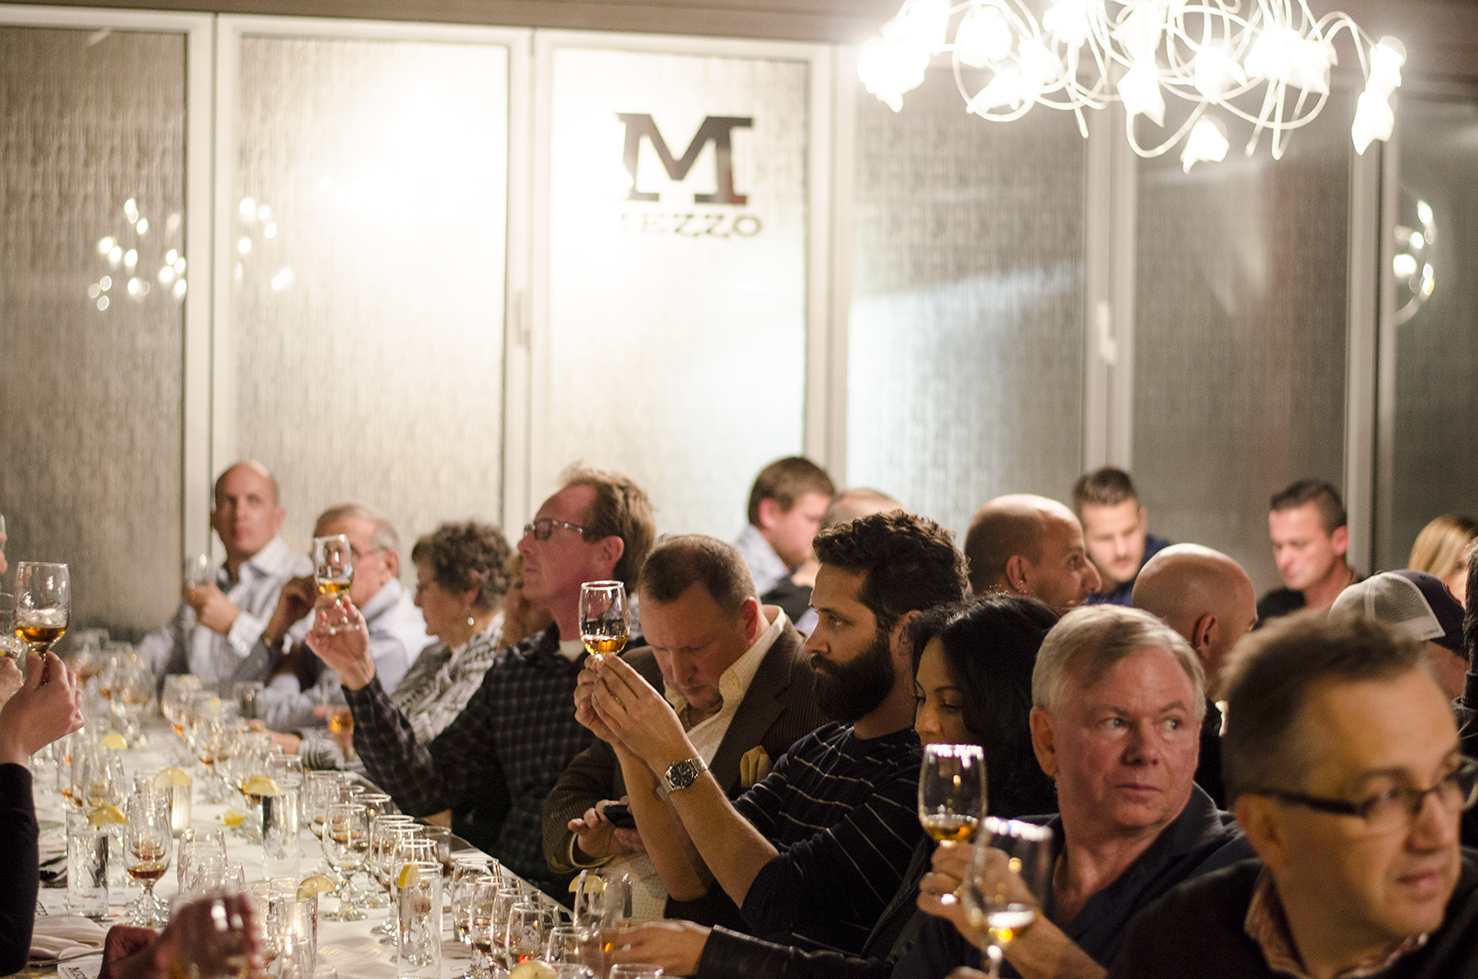 Mezzo Restaurant hosts whisky dinners, celebrating being located within Whiskytown, Canada.